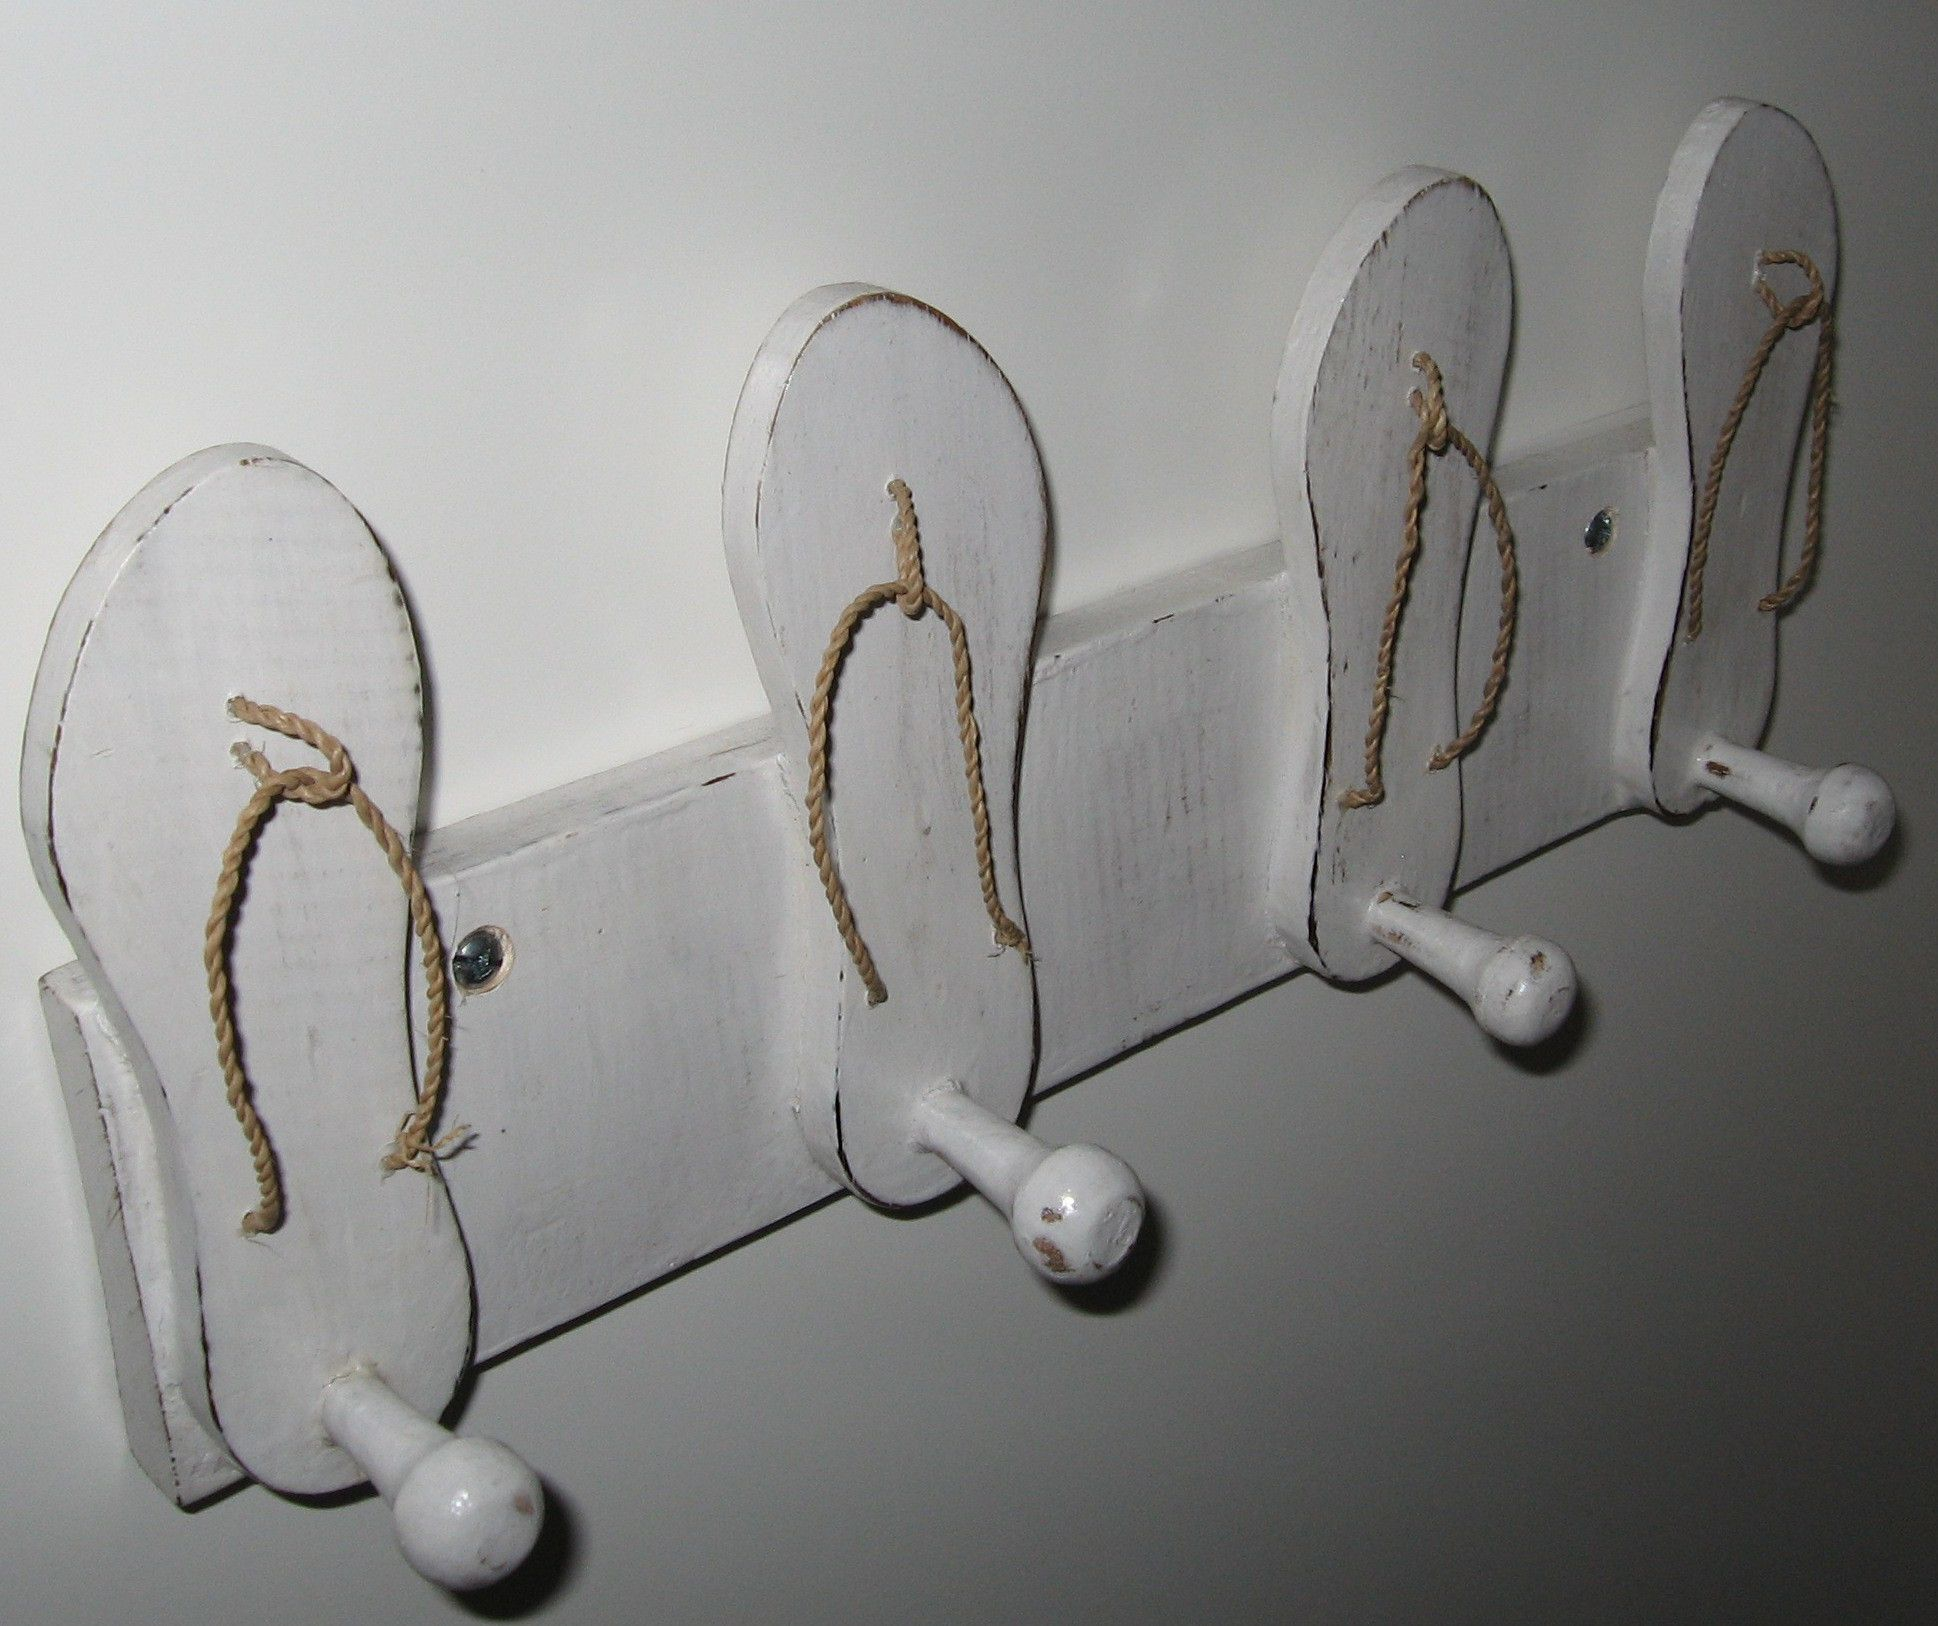 Gentil Unique Towel Hooks With Unique Shaped Flip Flops Hooks And Hangers Bathroom  Design For Decorative Towel Hooks